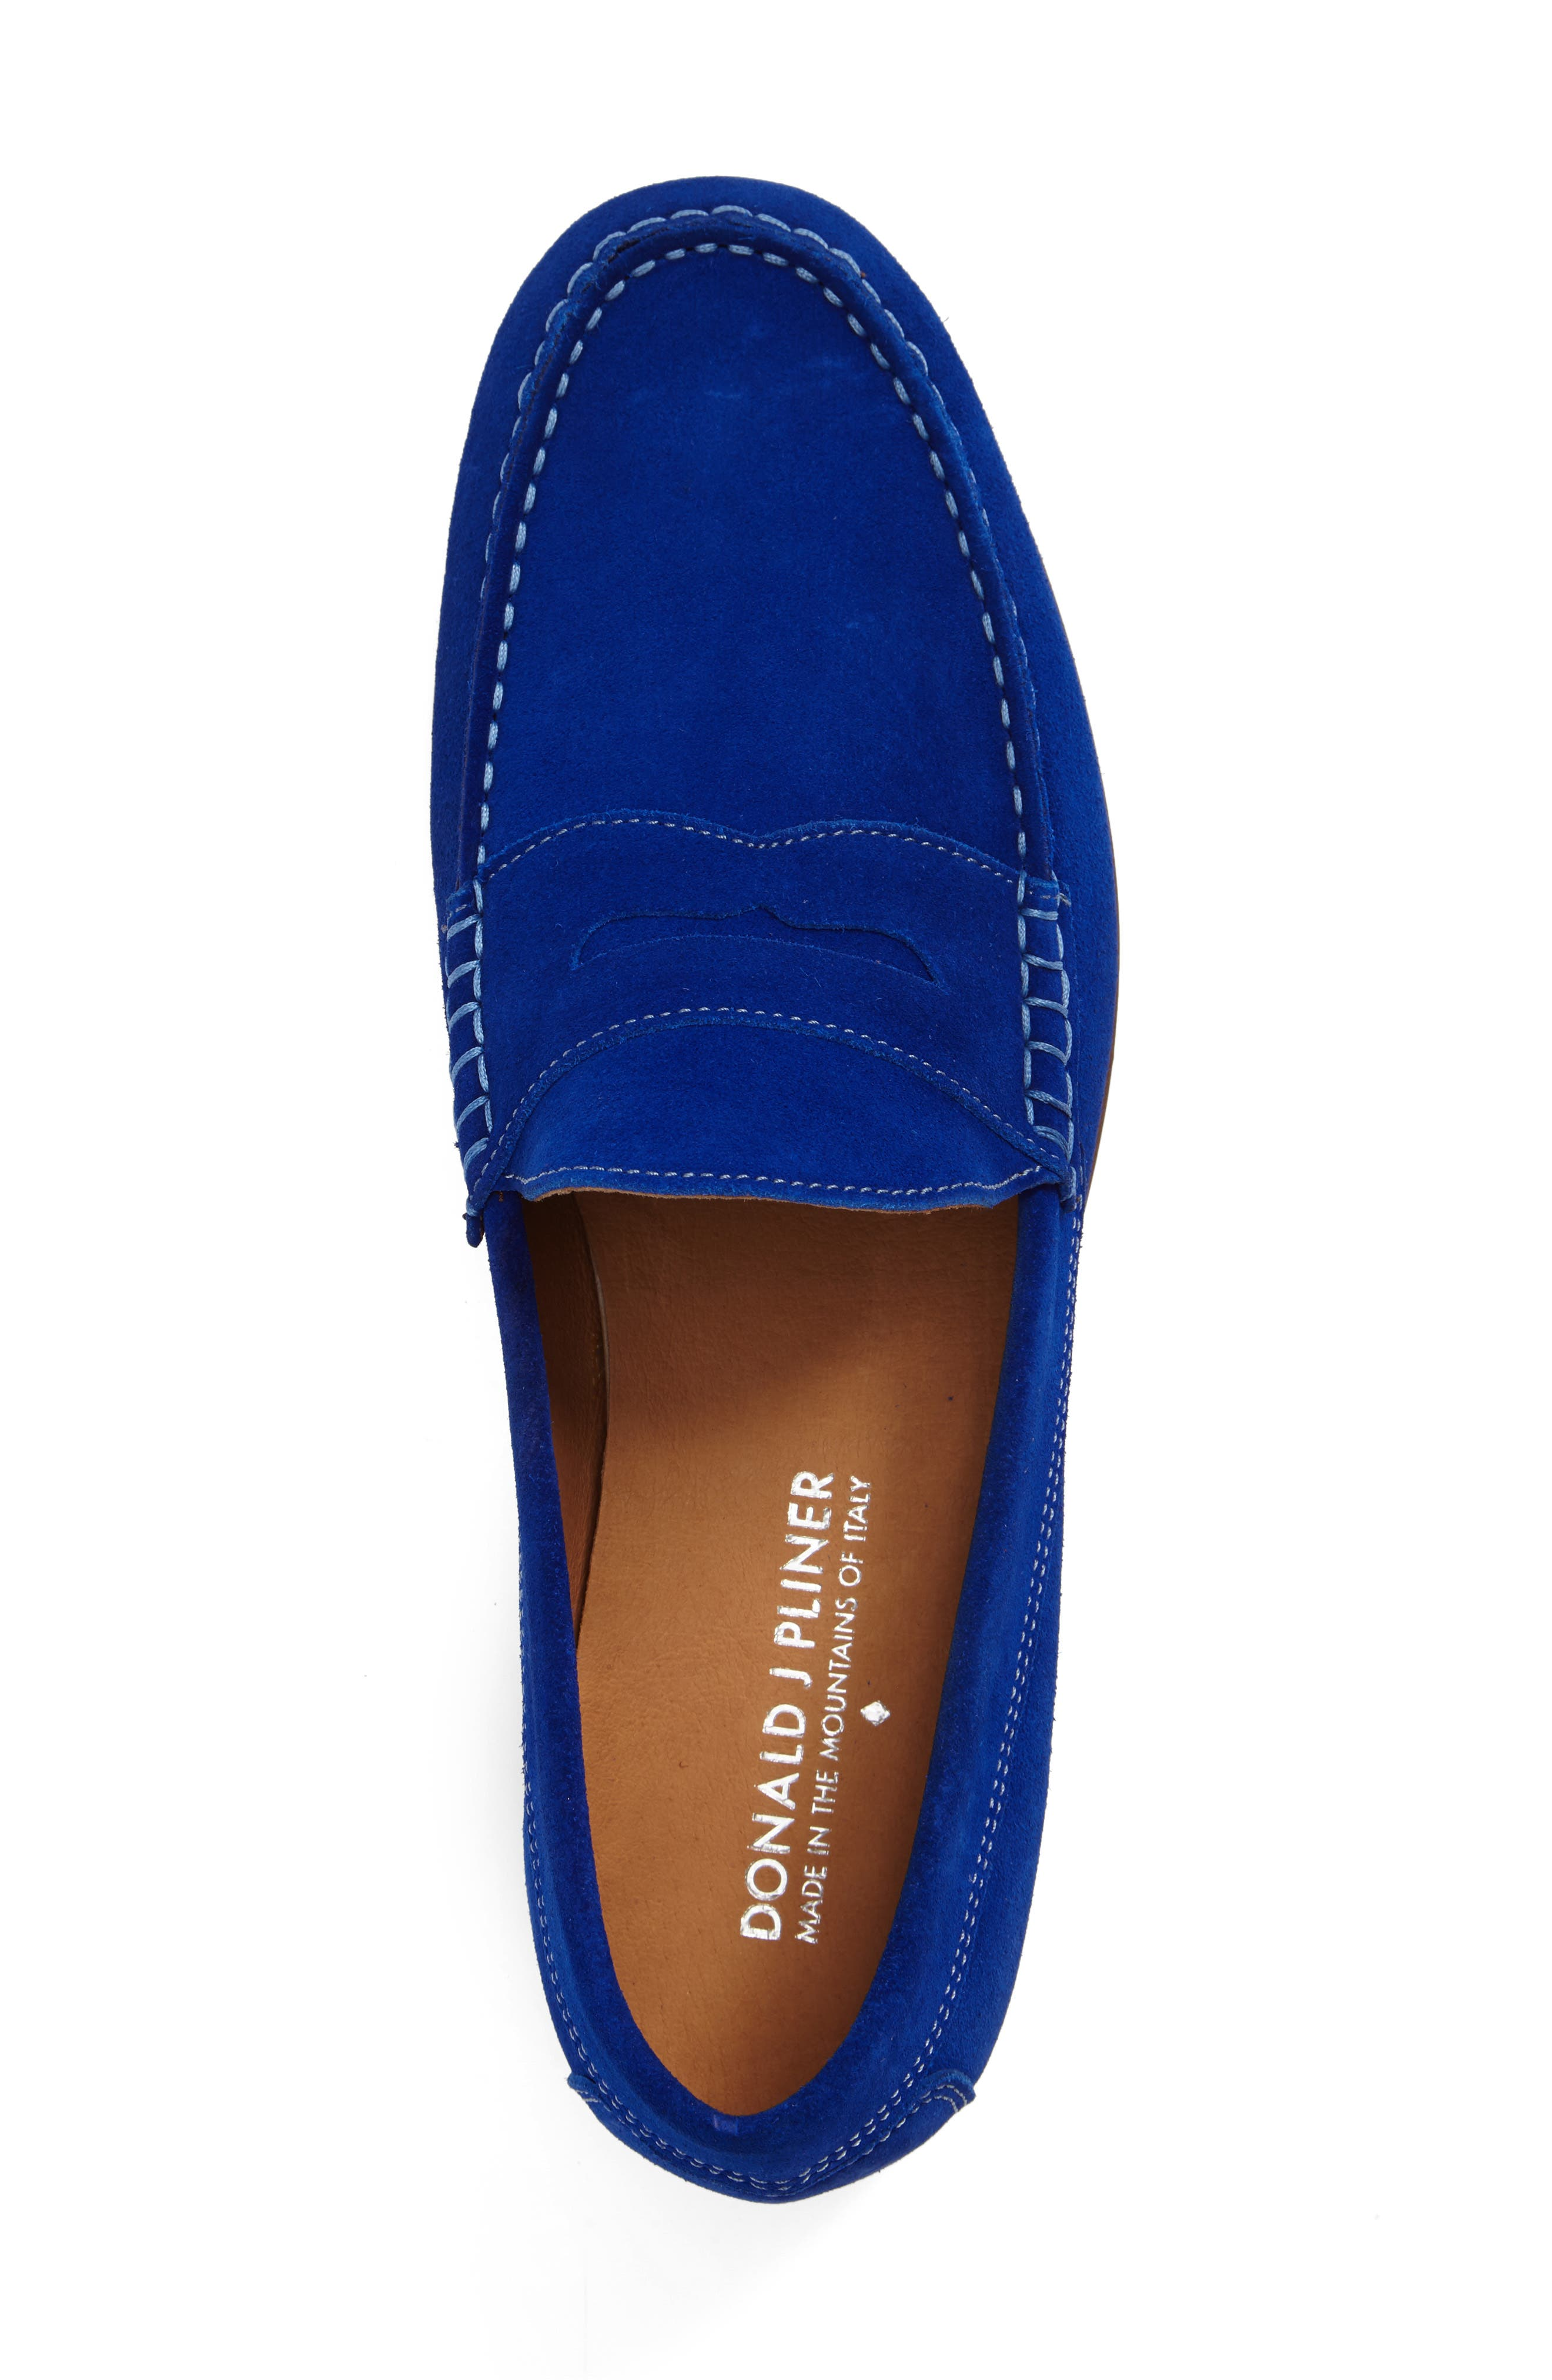 Nicola Penny Loafer,                             Alternate thumbnail 30, color,